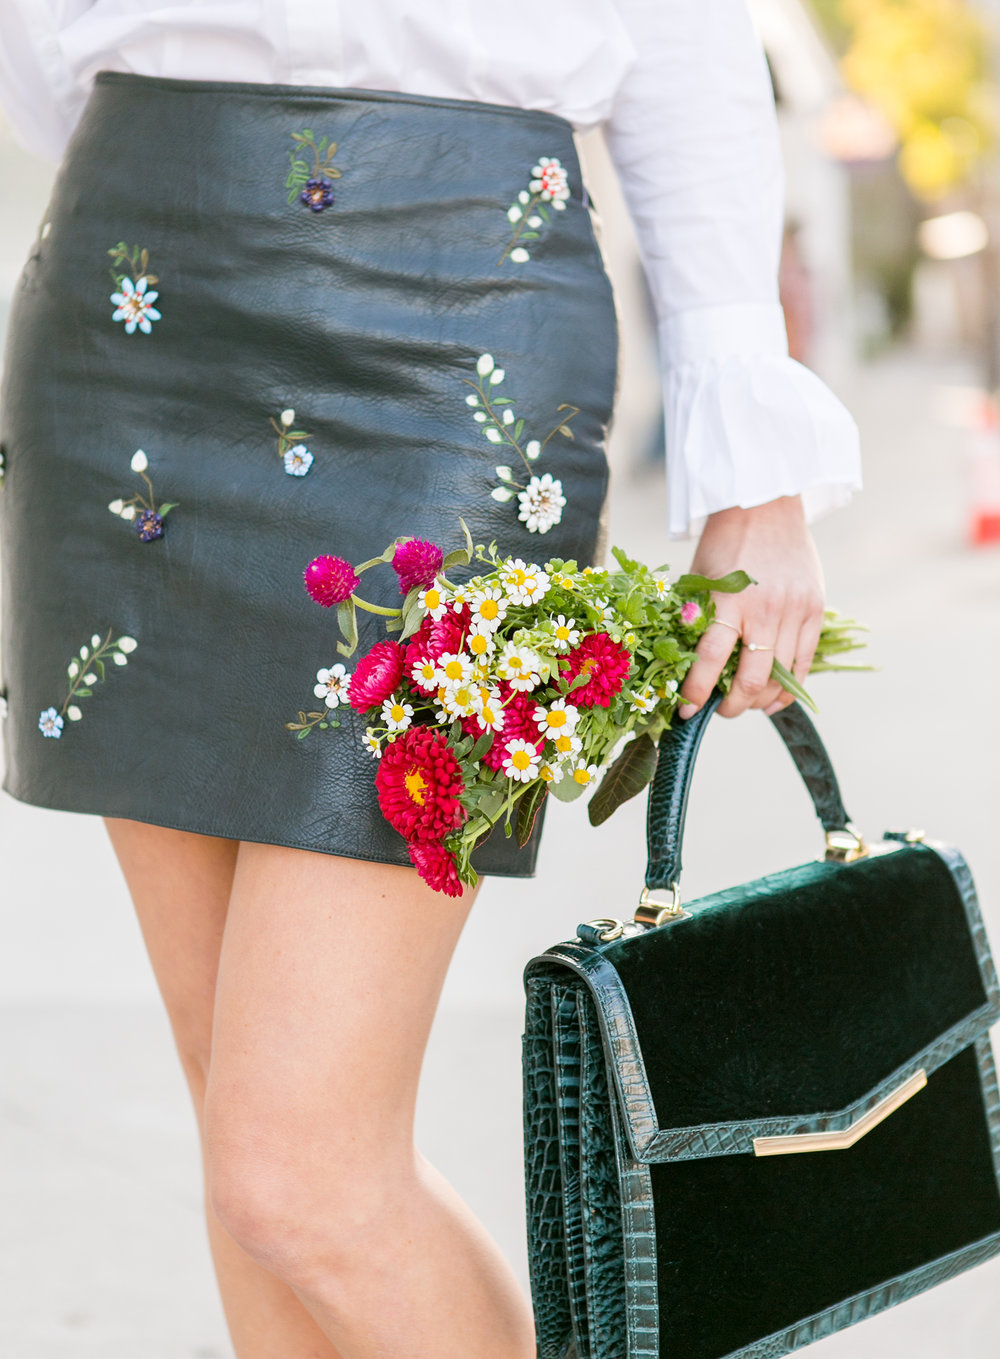 Sydne-Style-shows-how-to-wear-a-mini-skirt-for-fall-in-green-leather.jpg